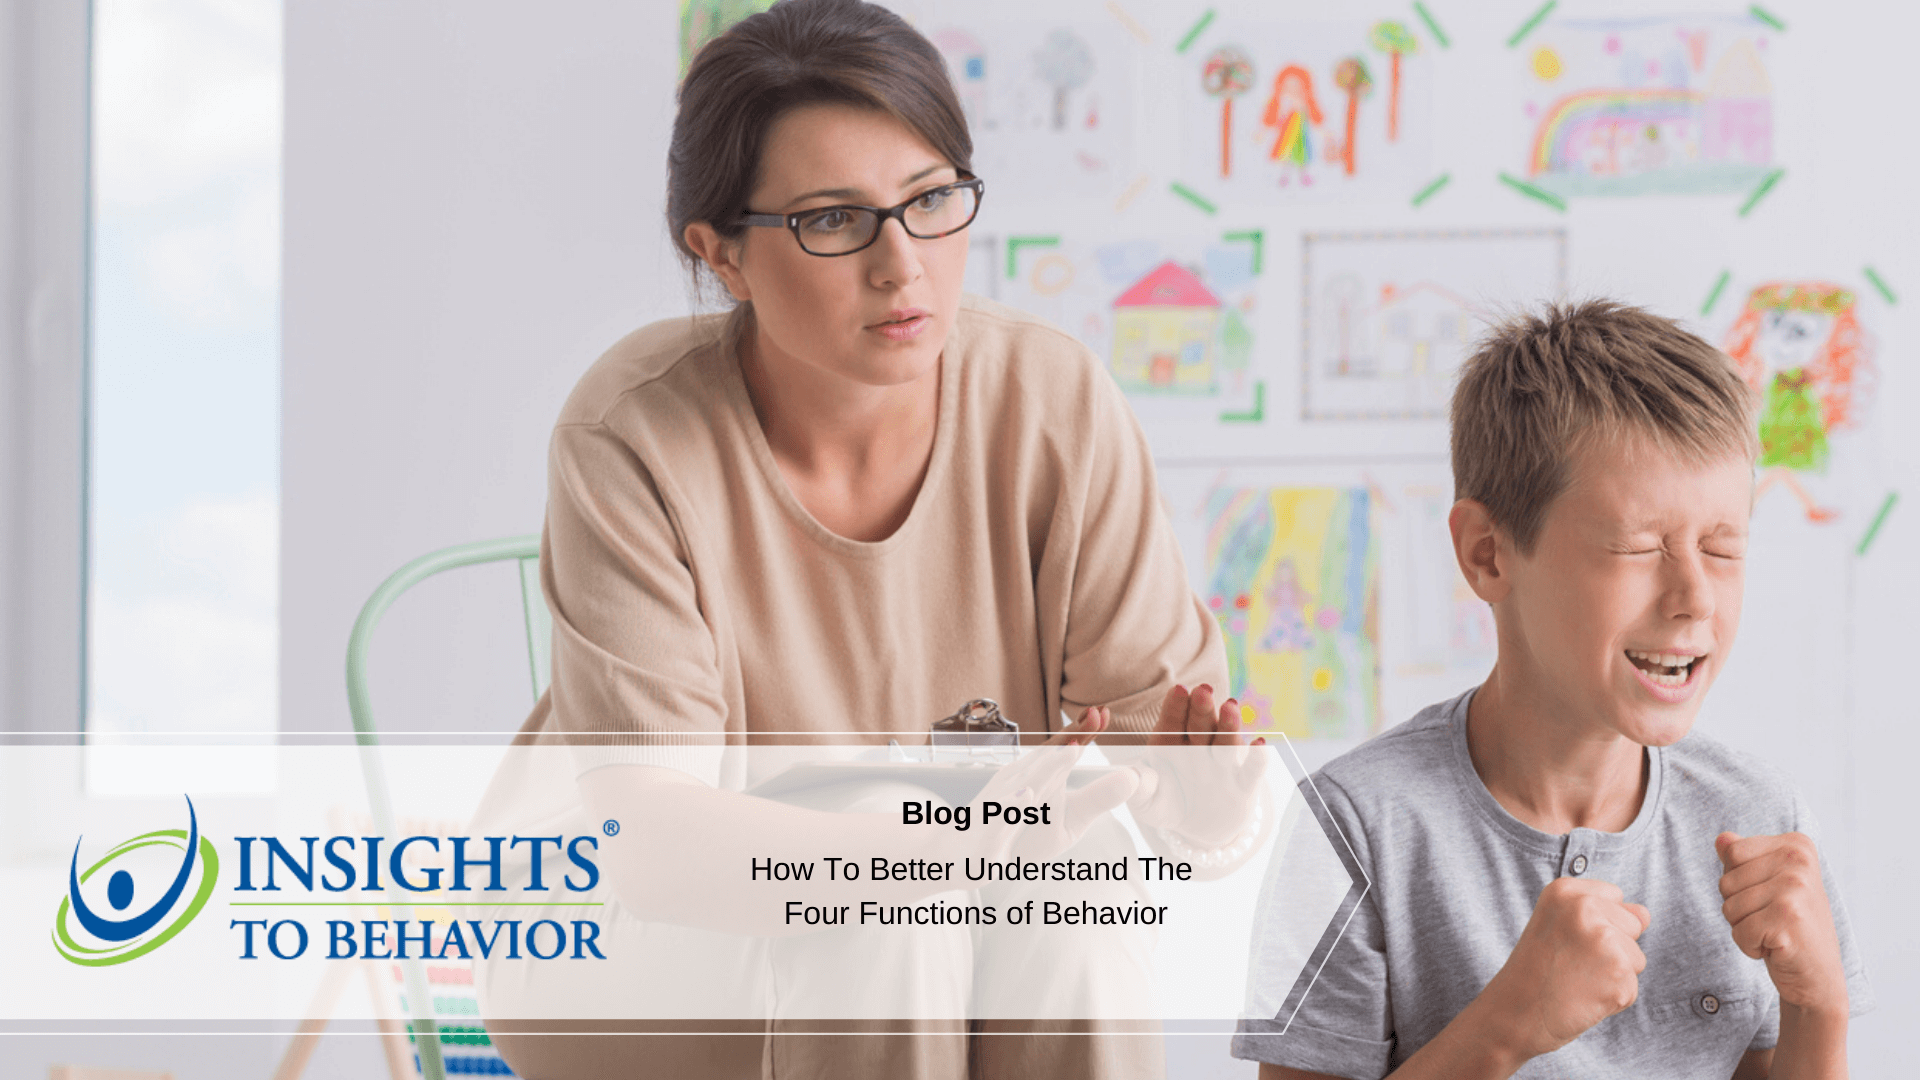 How To Better Understand The 4 Functions of Behavior